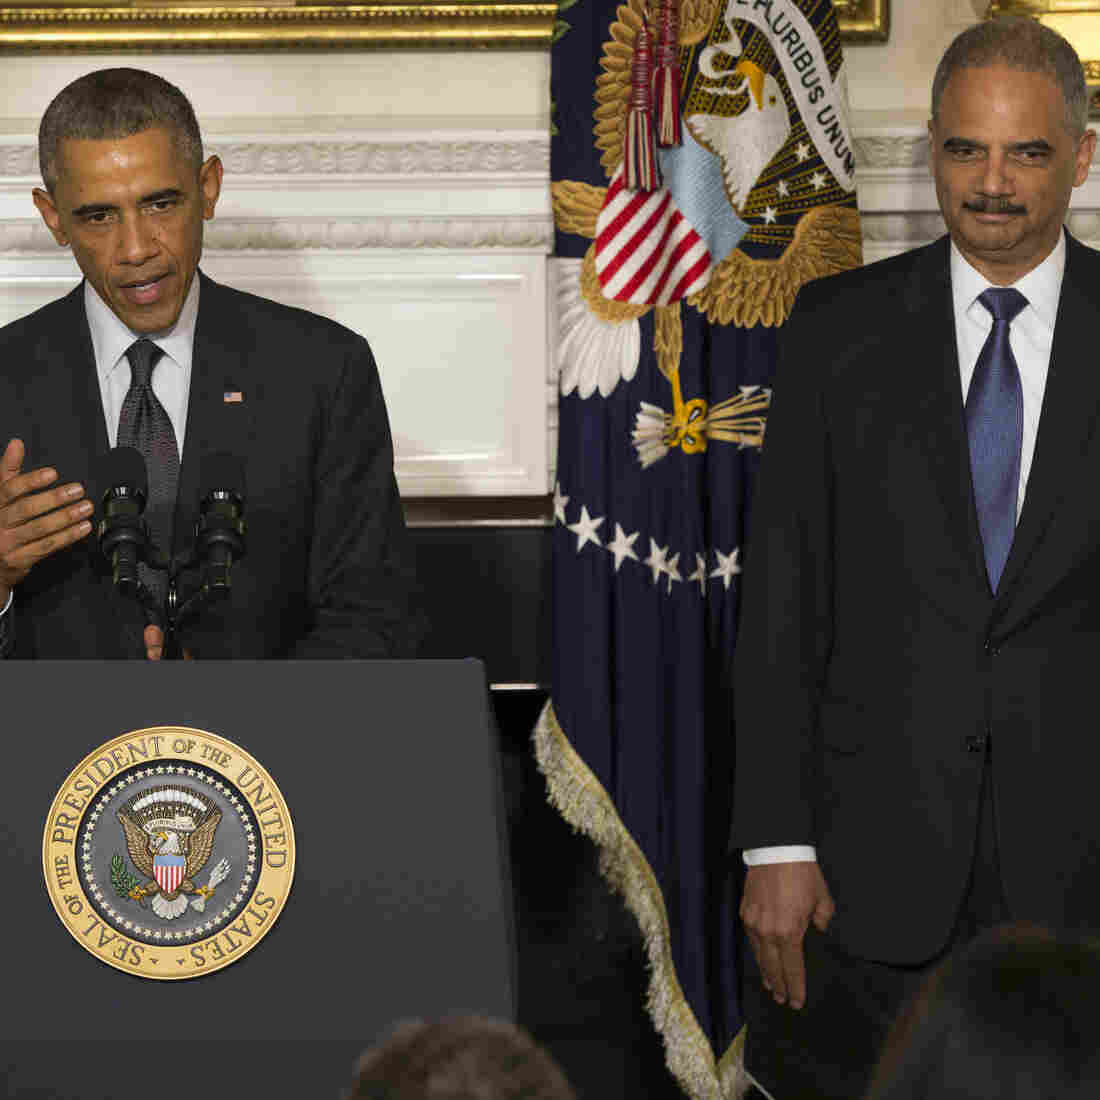 President Obama, accompanied by Attorney General Eric Holder, speaks in the State Dining Room of the White House on Thursday to announce that Holder is resigning. Holder, who served as the public face of the Obama administration's legal fight against terrorism and weighed in on issues of racial fairness, is resigning after six years on the job.